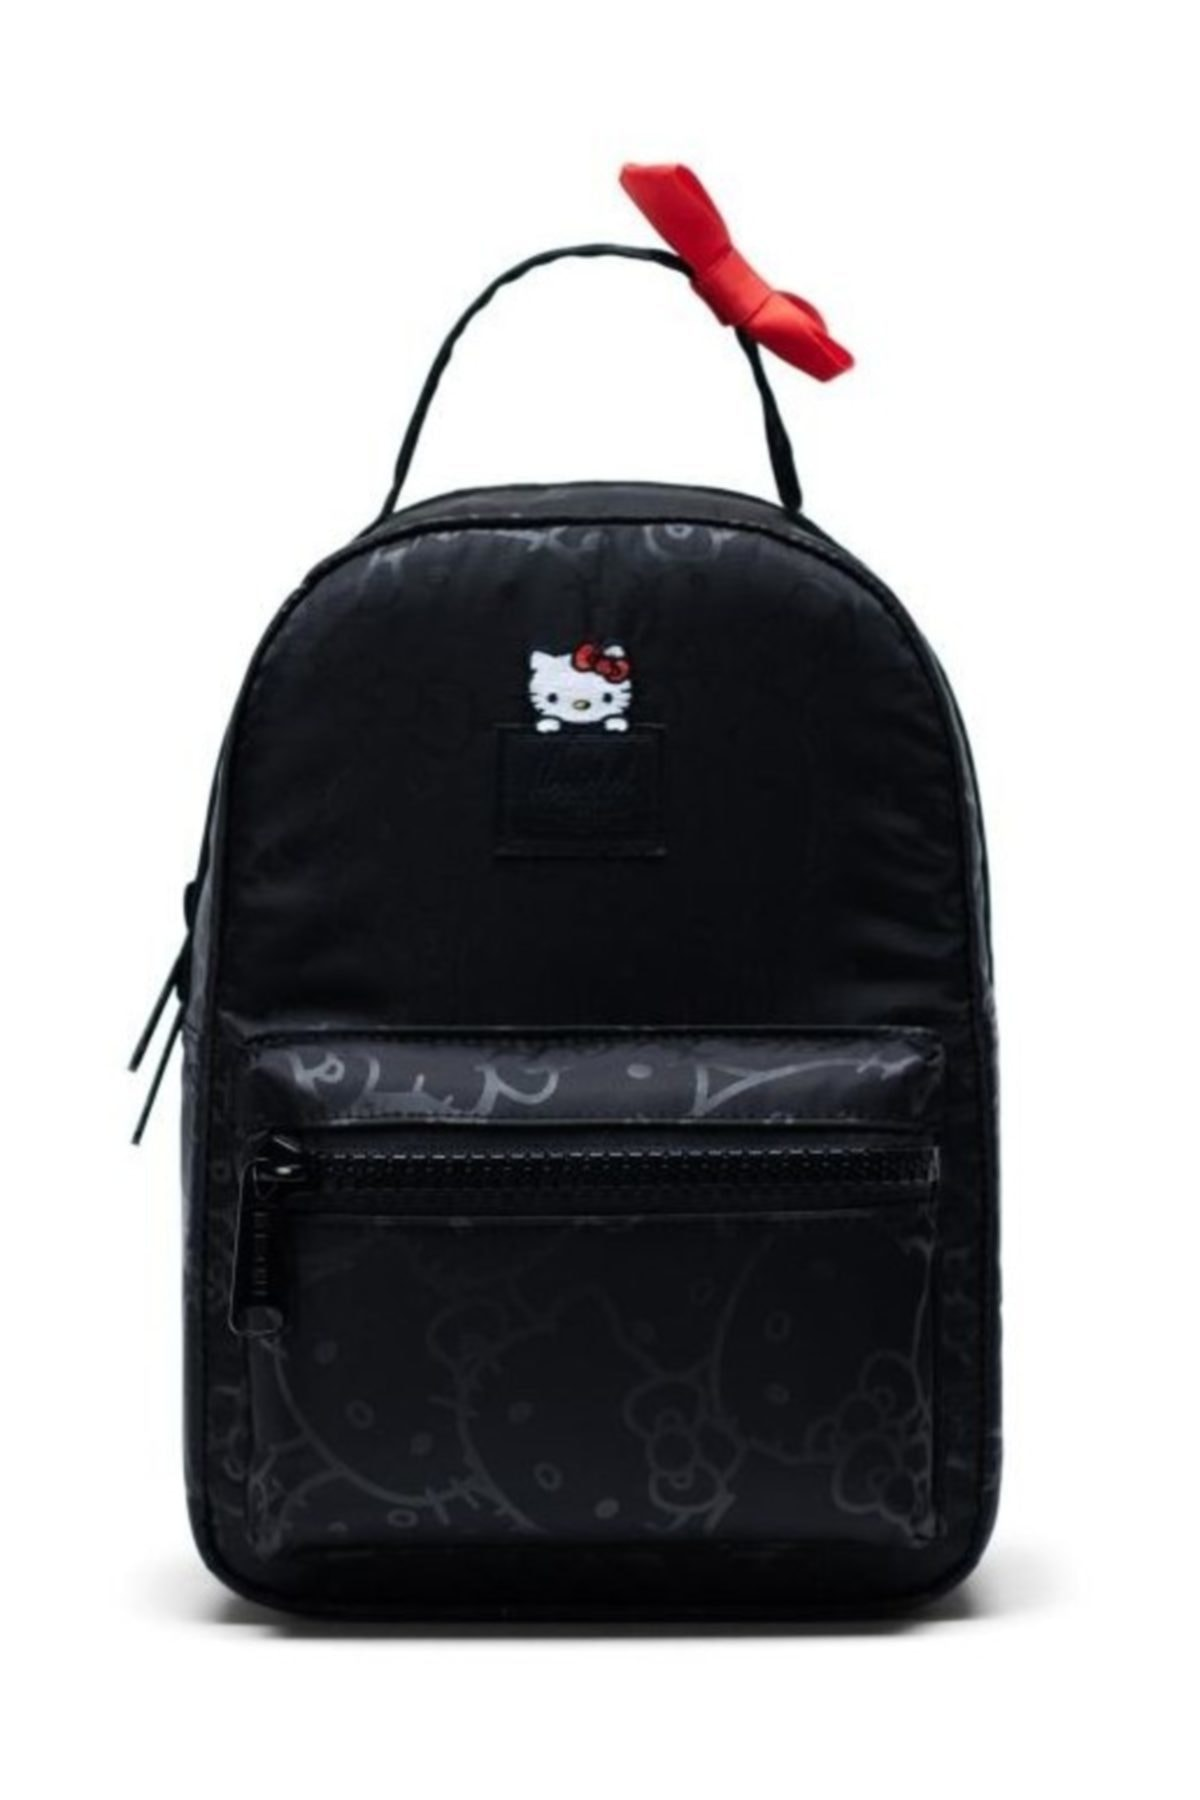 Herschel Supply Co. Nova Mini Sırt Çantası 10501-03066-os 2